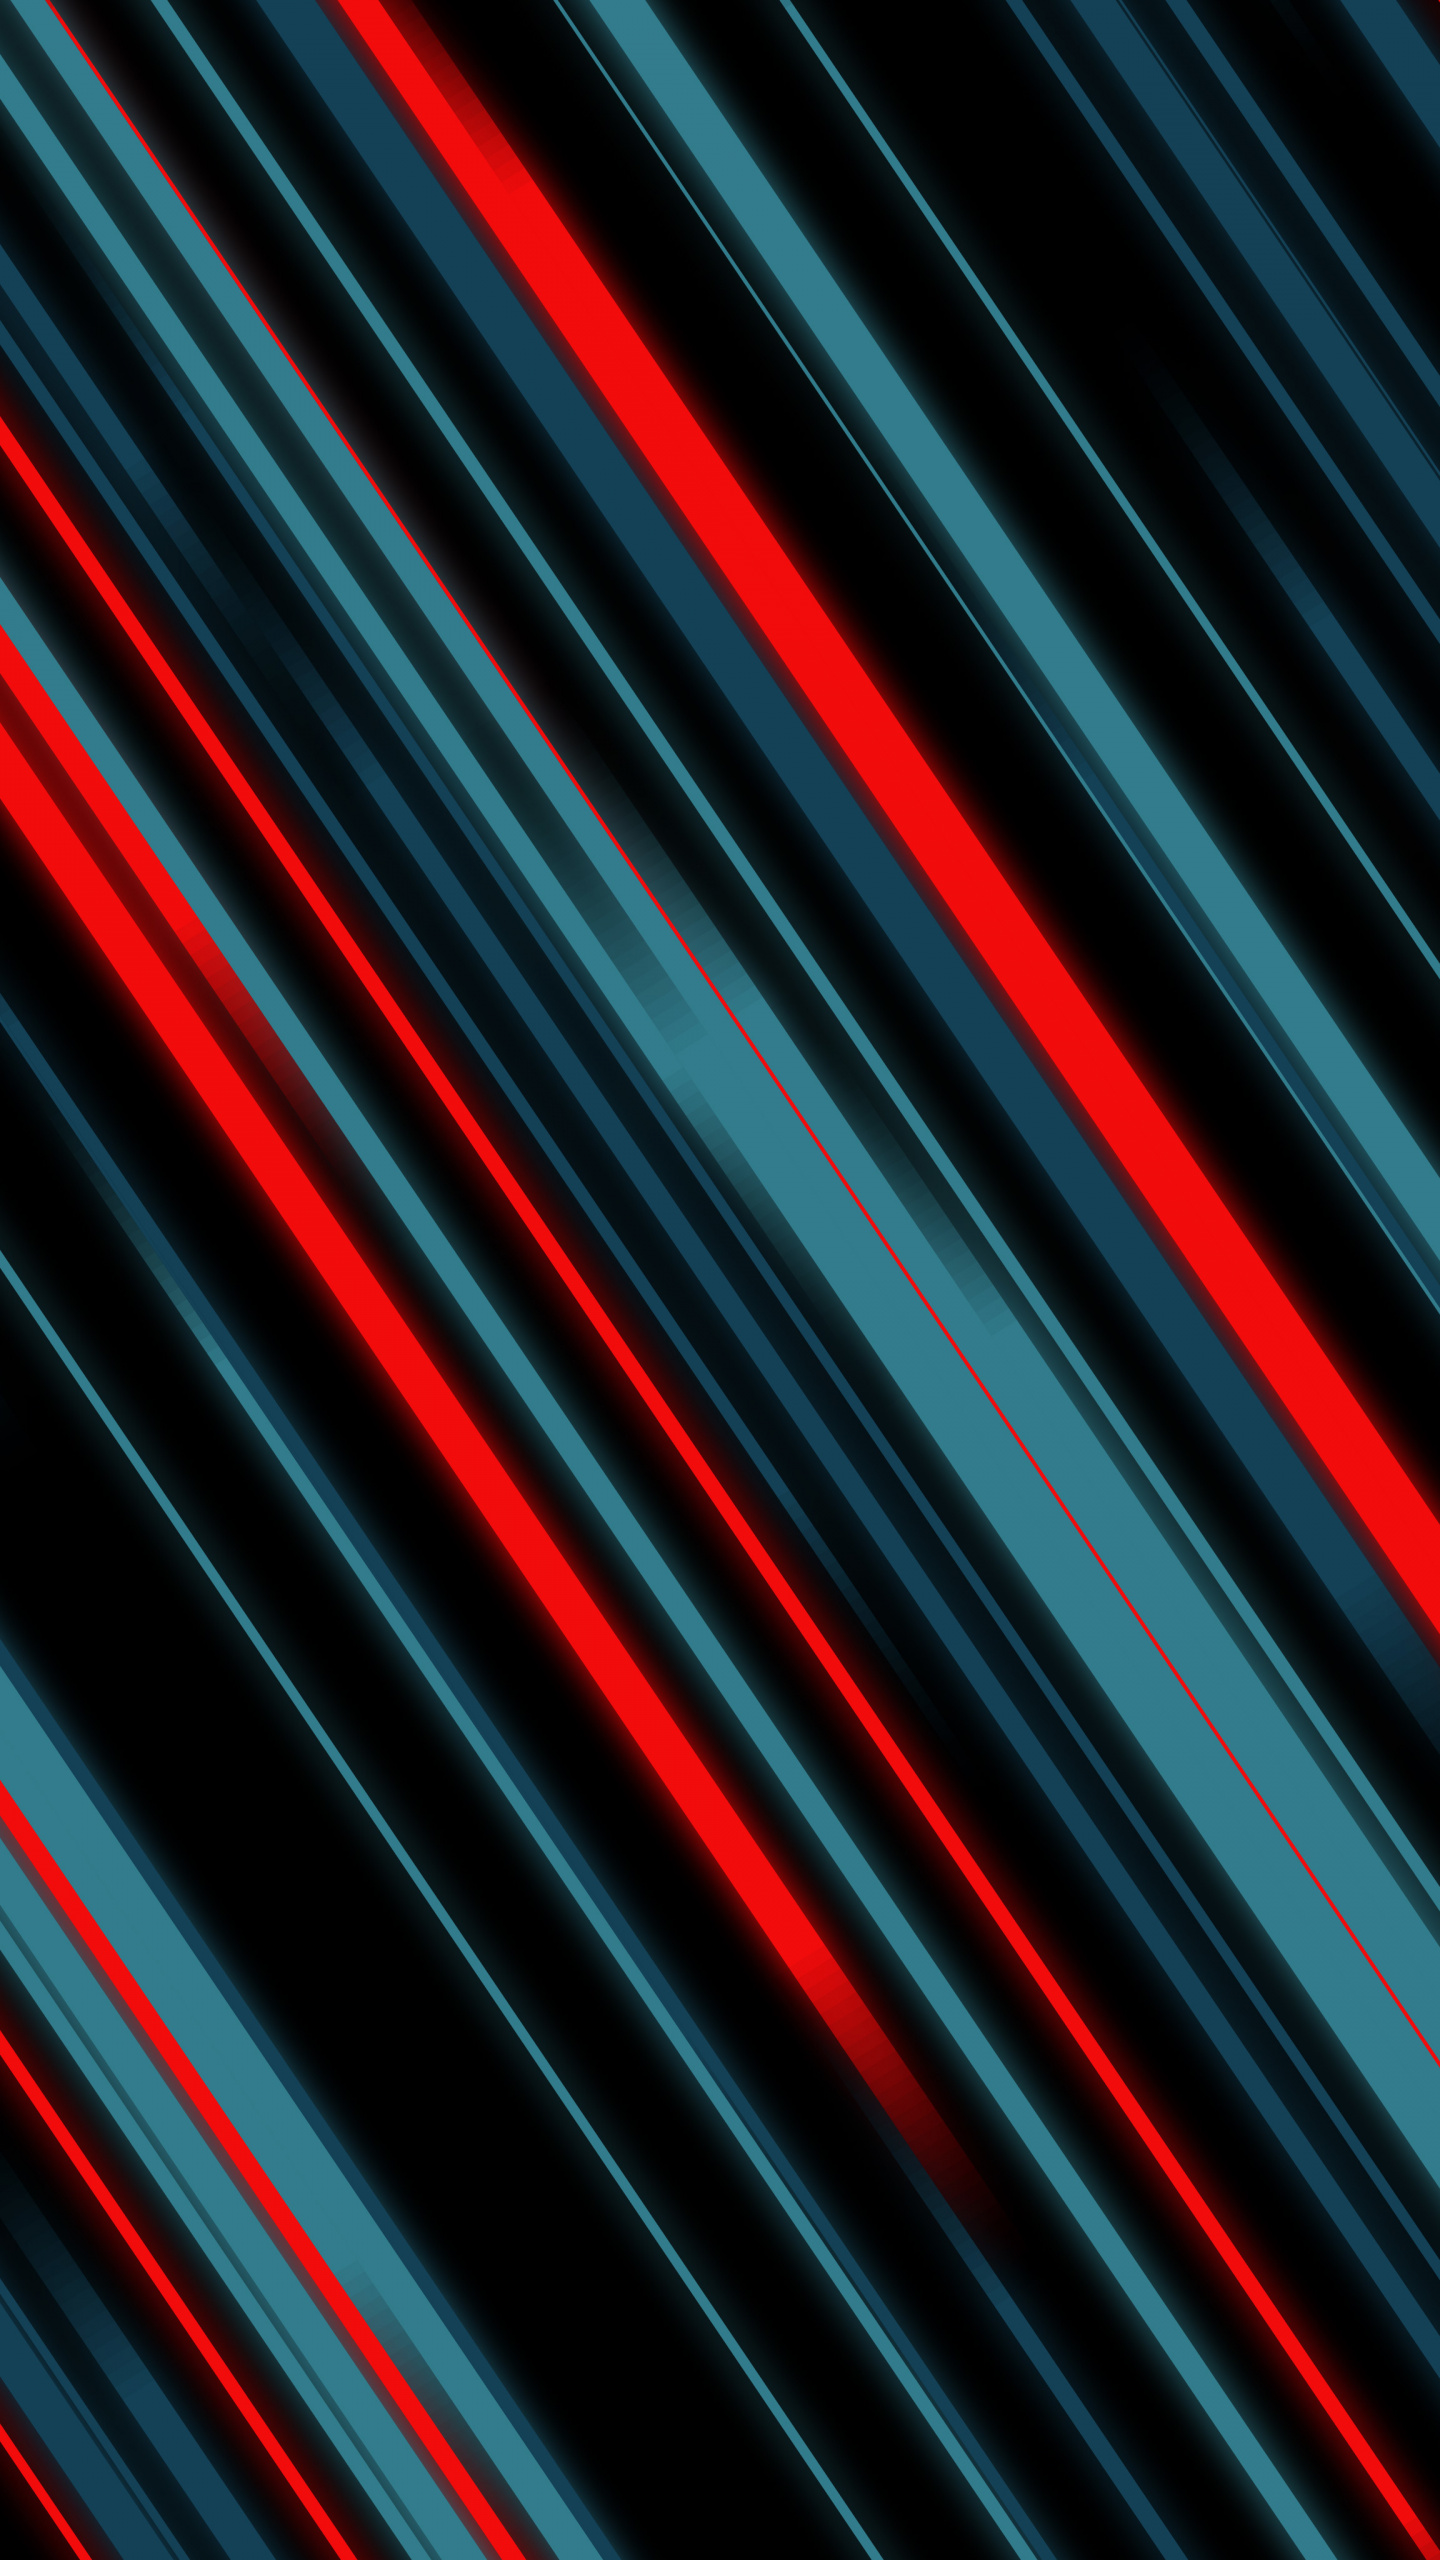 Material, Style, Lines, Red And Dark, Abstract, Wallpaper - Abstract Wallpaper 4k Android - HD Wallpaper